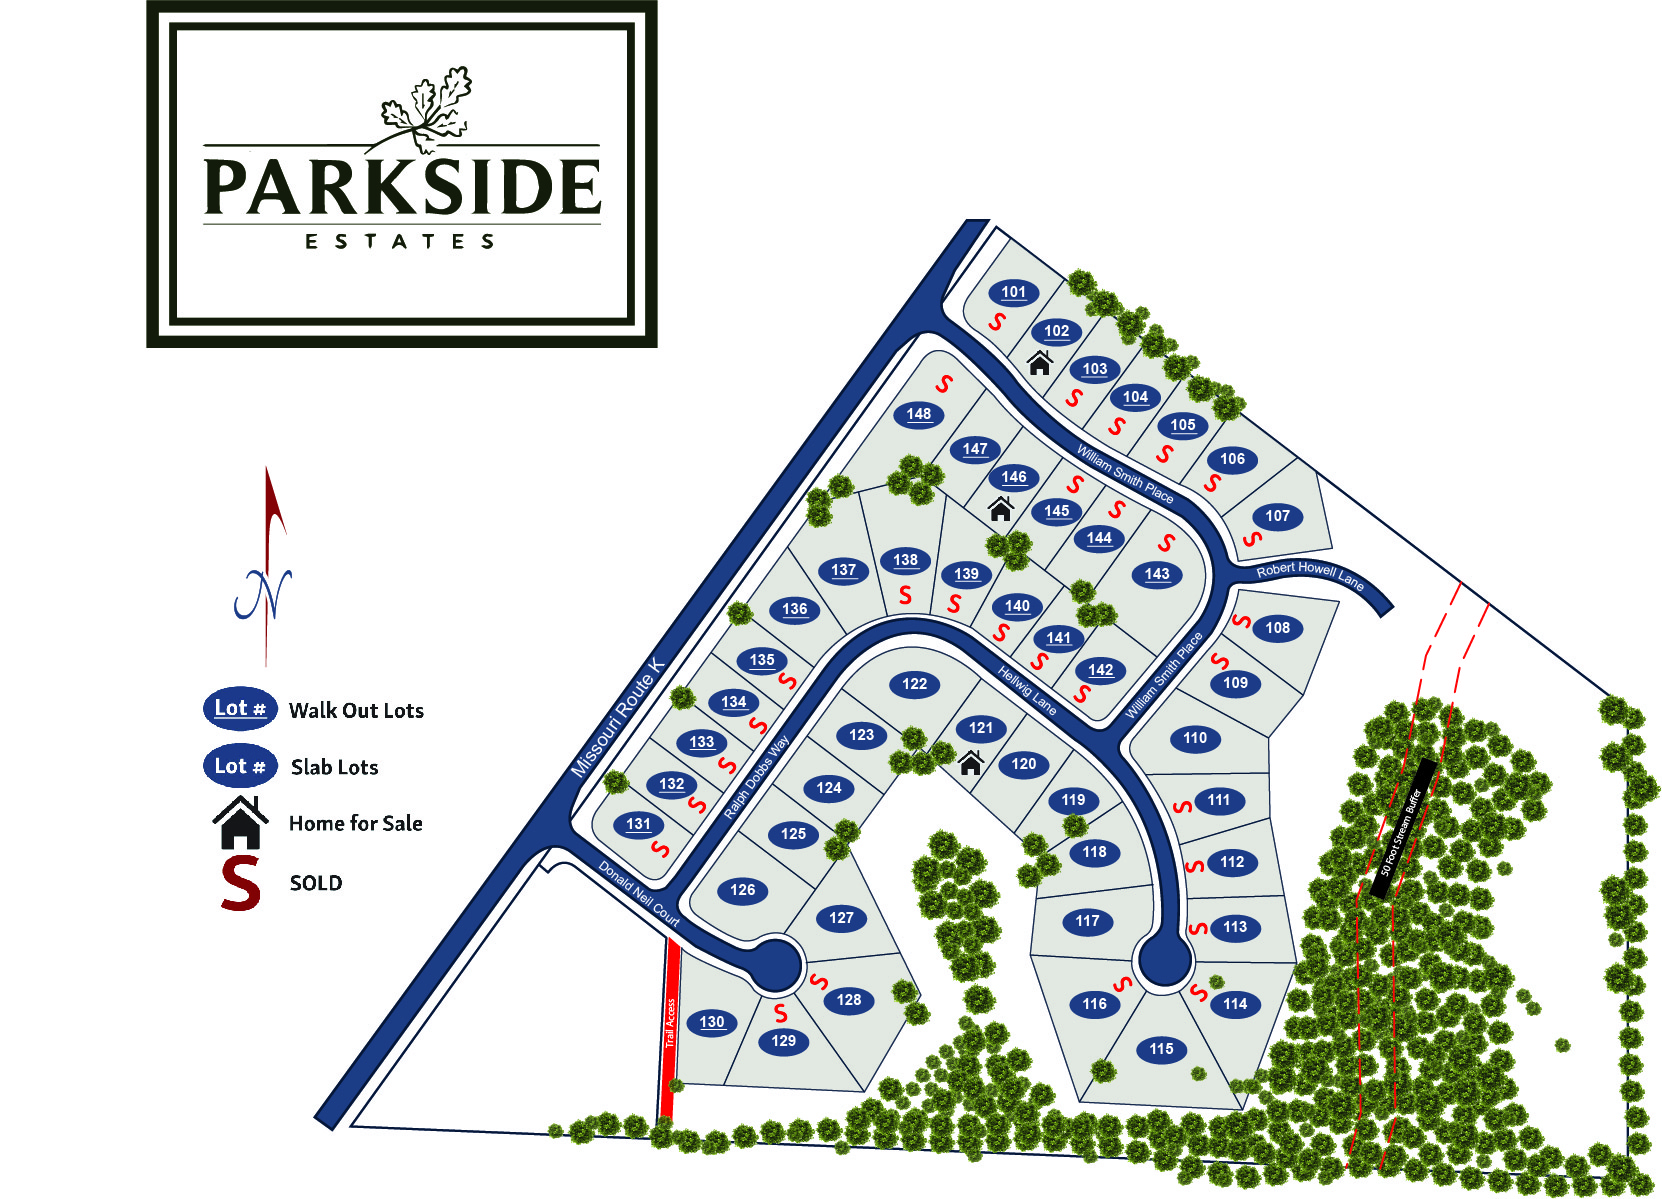 Parkside Estates